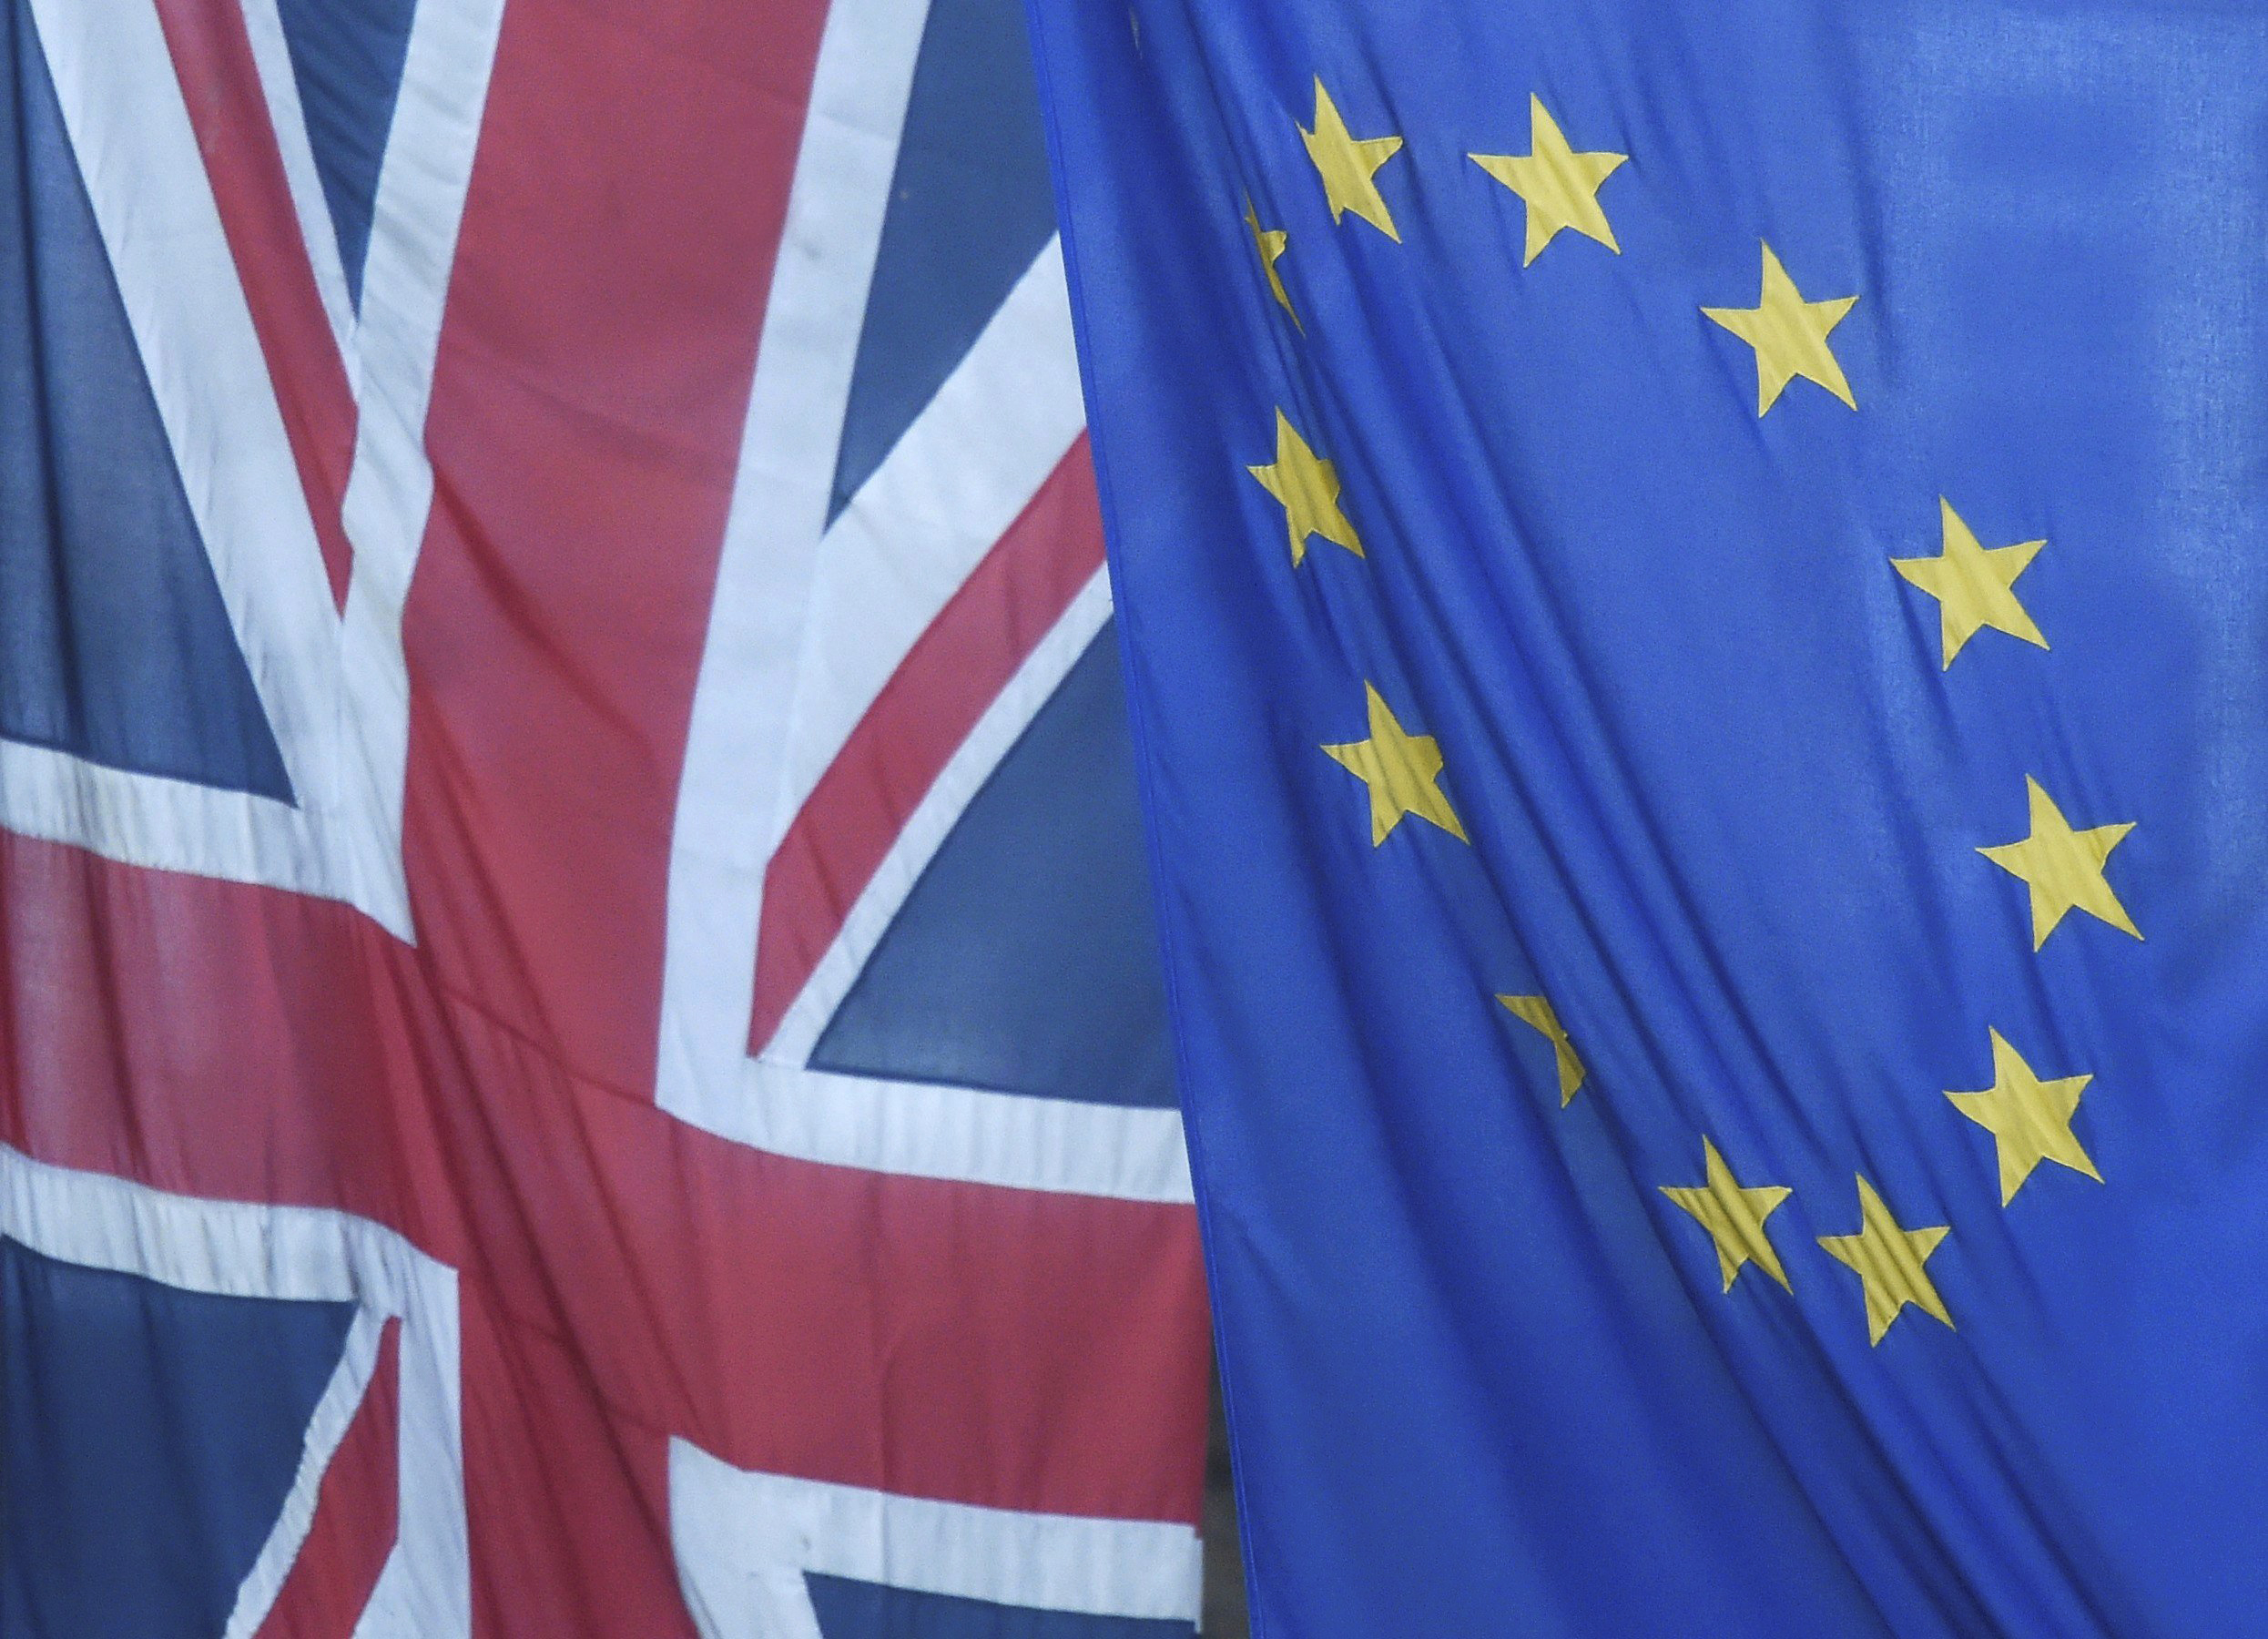 A Union Jack flag flies next to the flag of the European Union in Westminster, London, on June 24, 2016.